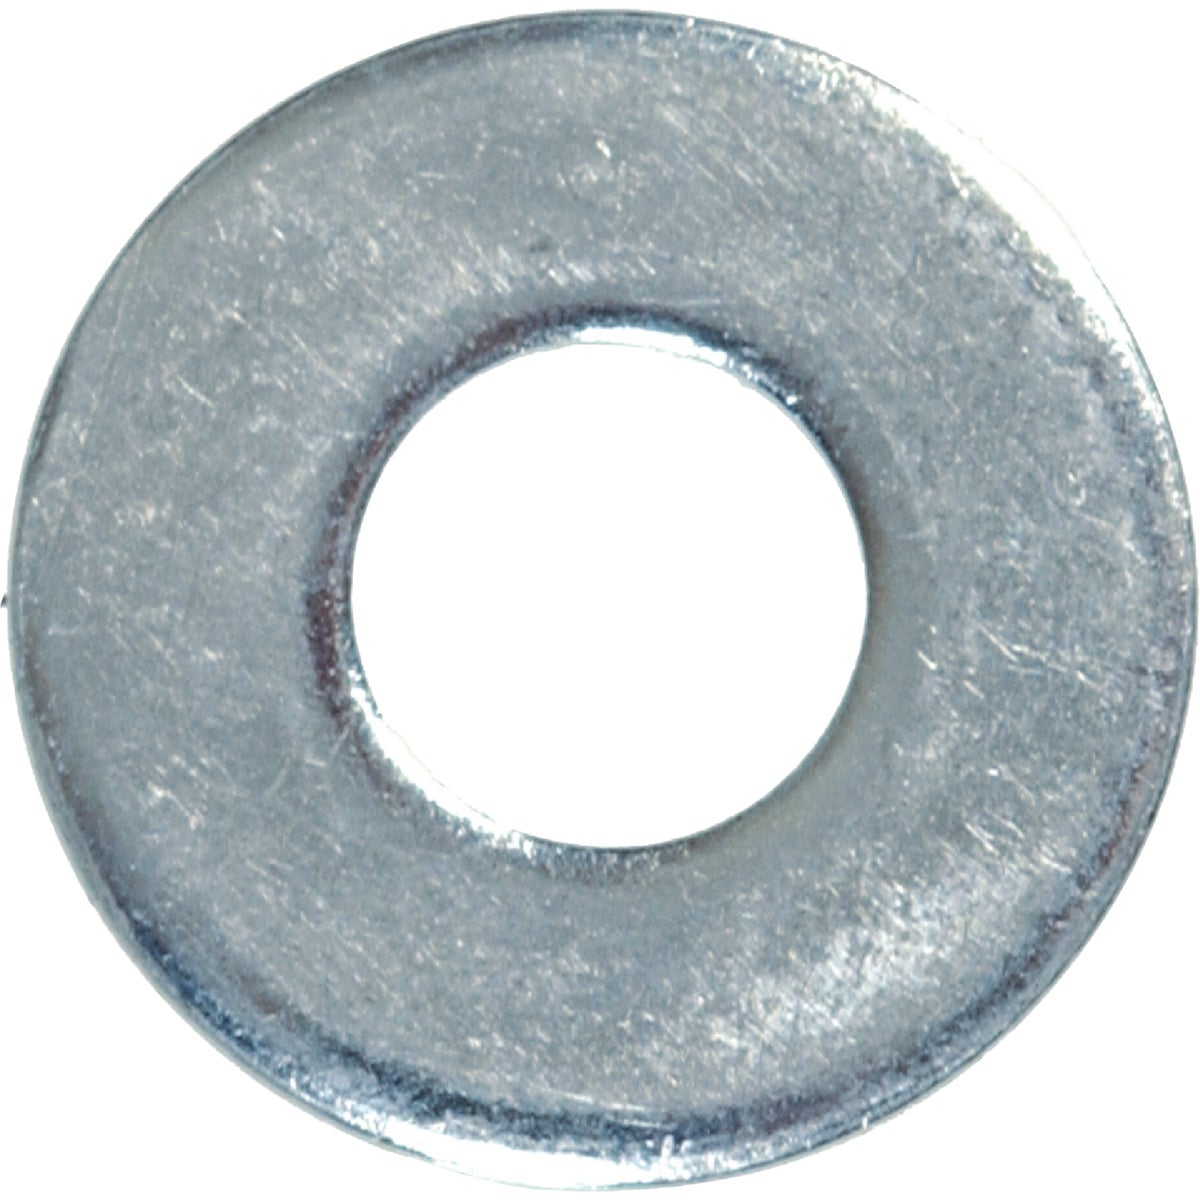 #10 STEEL FLAT WASHER